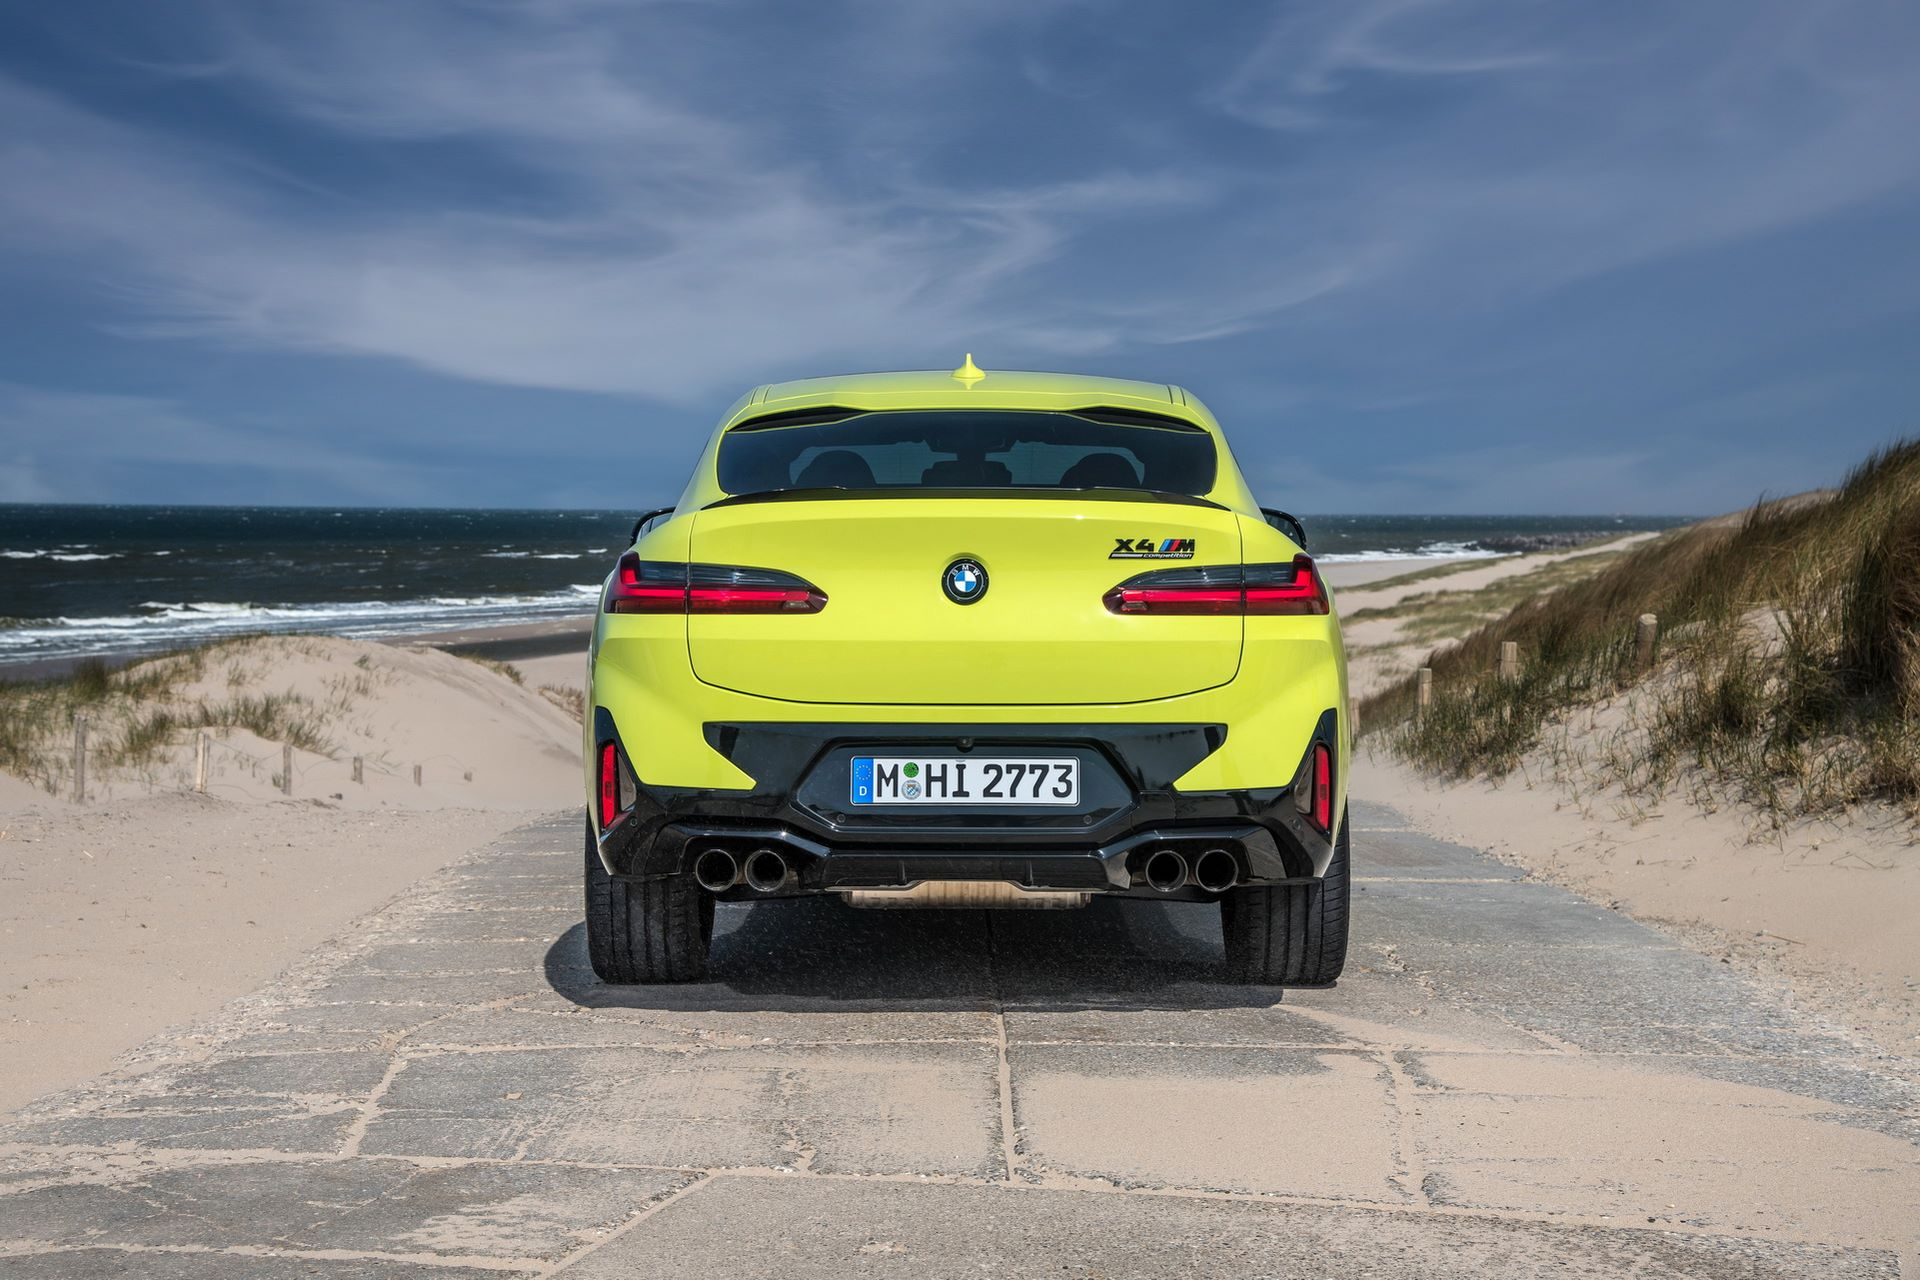 BMW-X3-M-X4-M-Competition-20